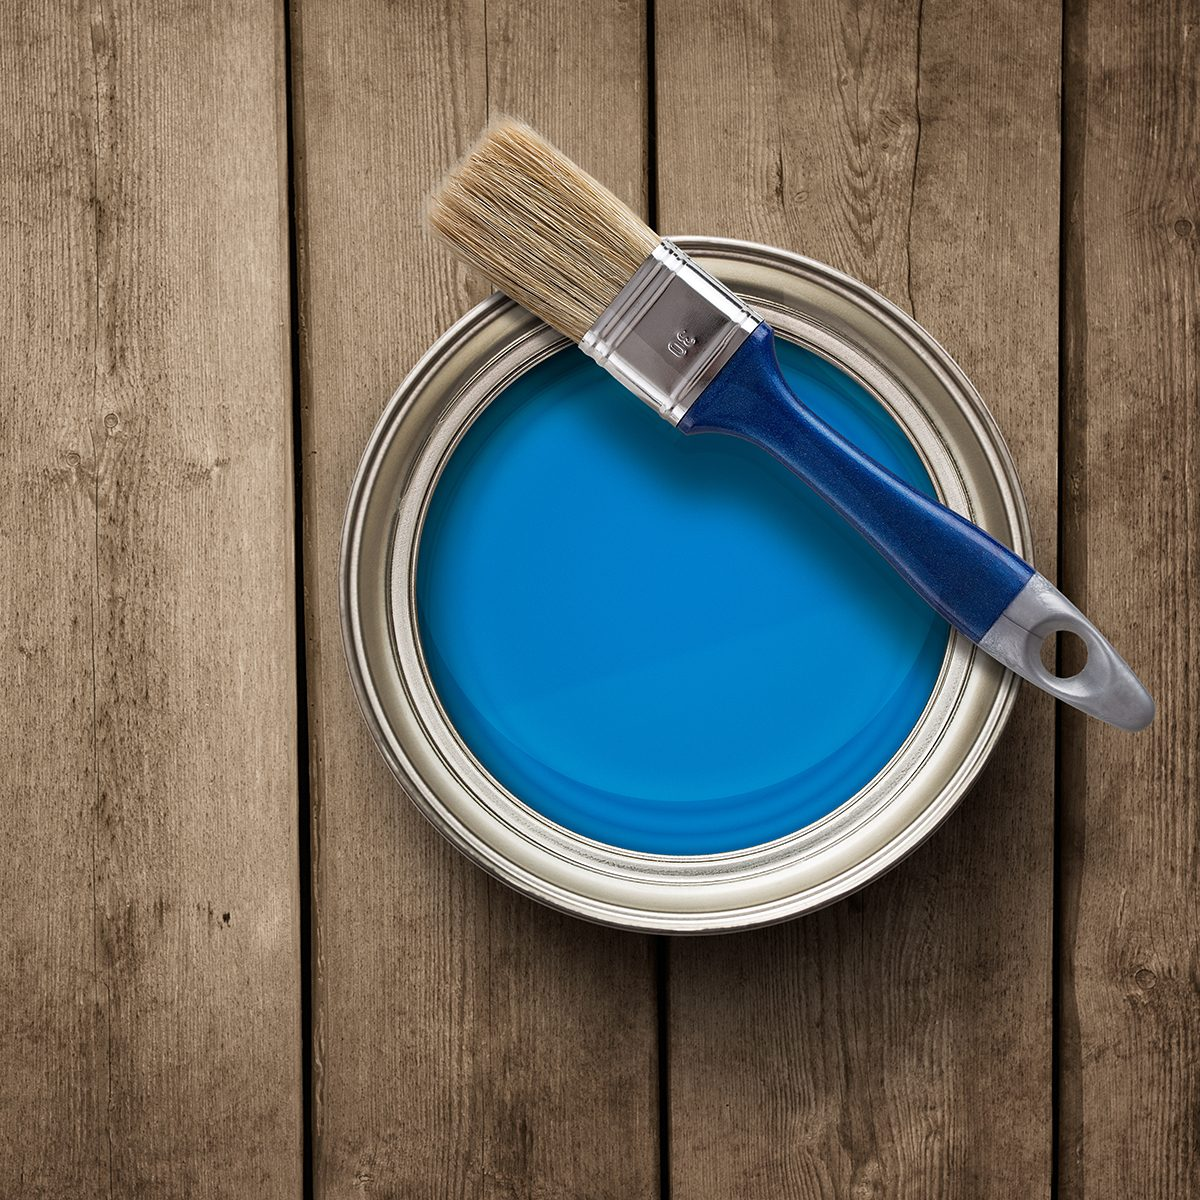 House renovation, paint can on the old wooden background